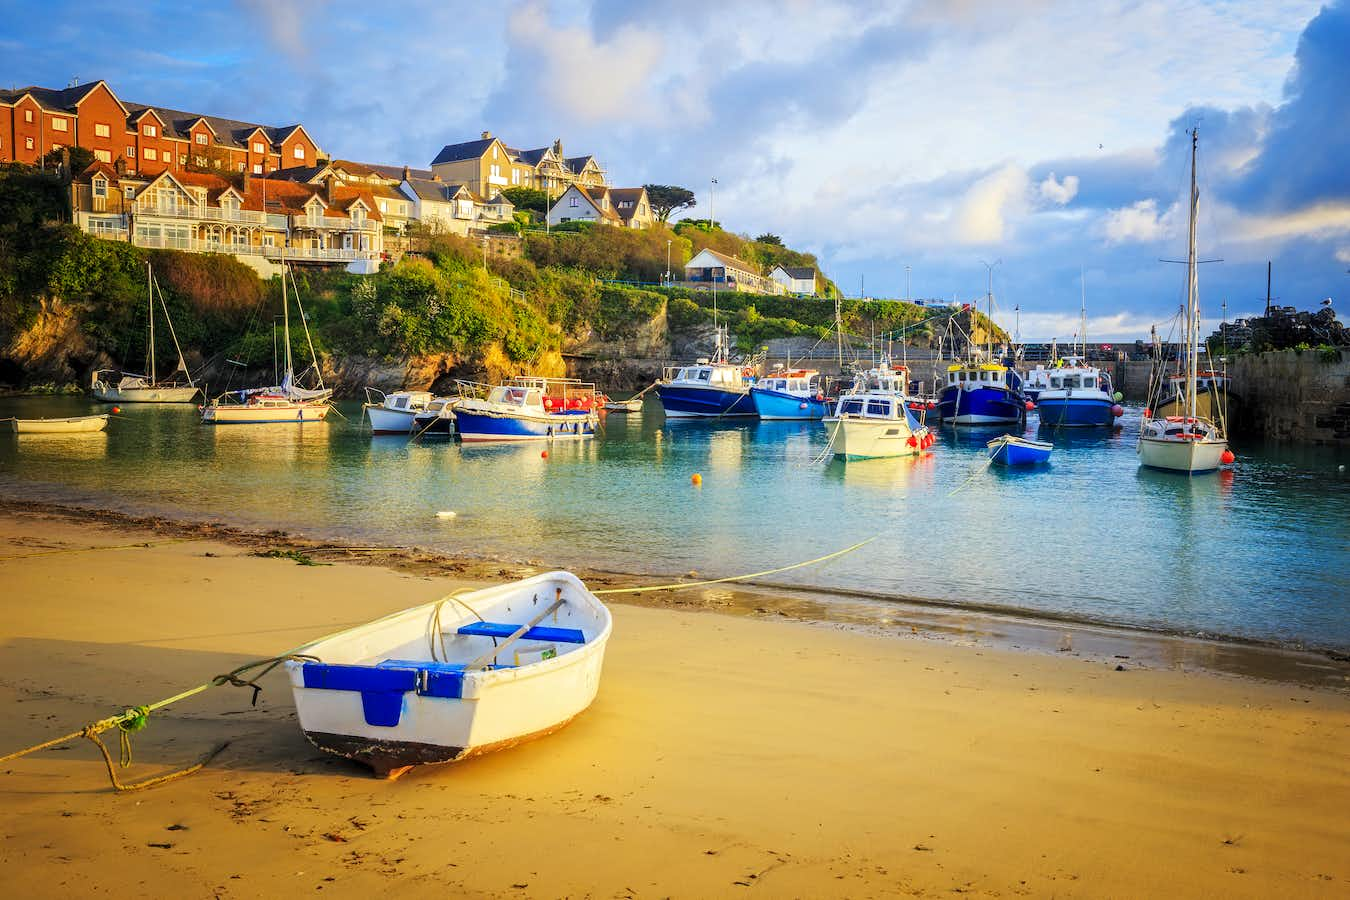 Discover Newquay, Falmouth and the Eden Project